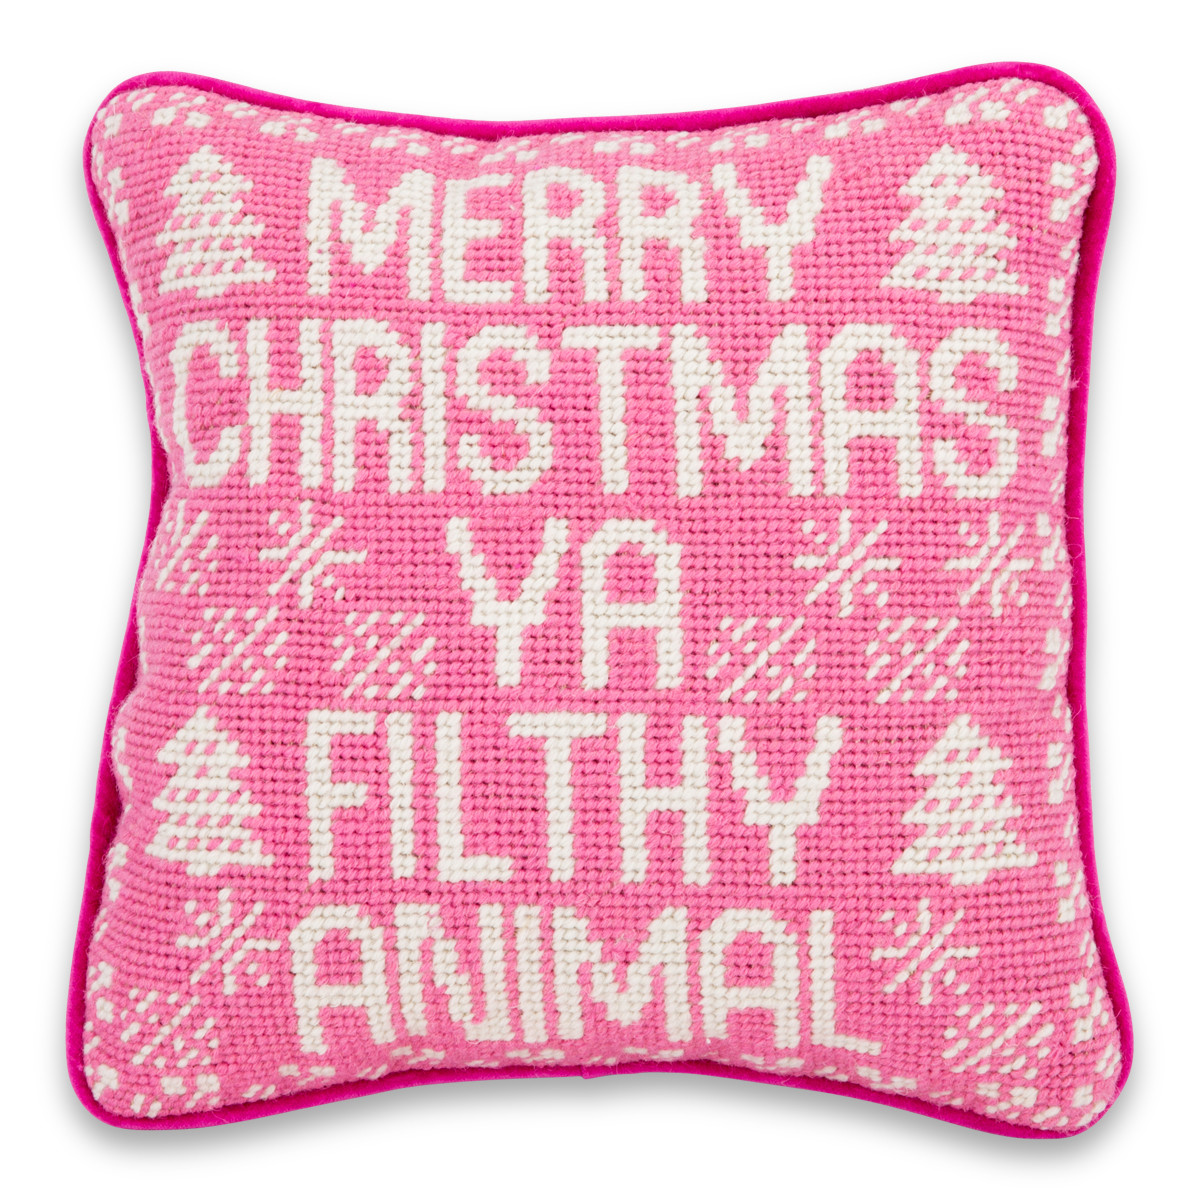 Furbish Studio Merry Christmas Filthy Animal Needlepoint Pillow - Deck Your Halls Christmas Ornaments and Home Decor